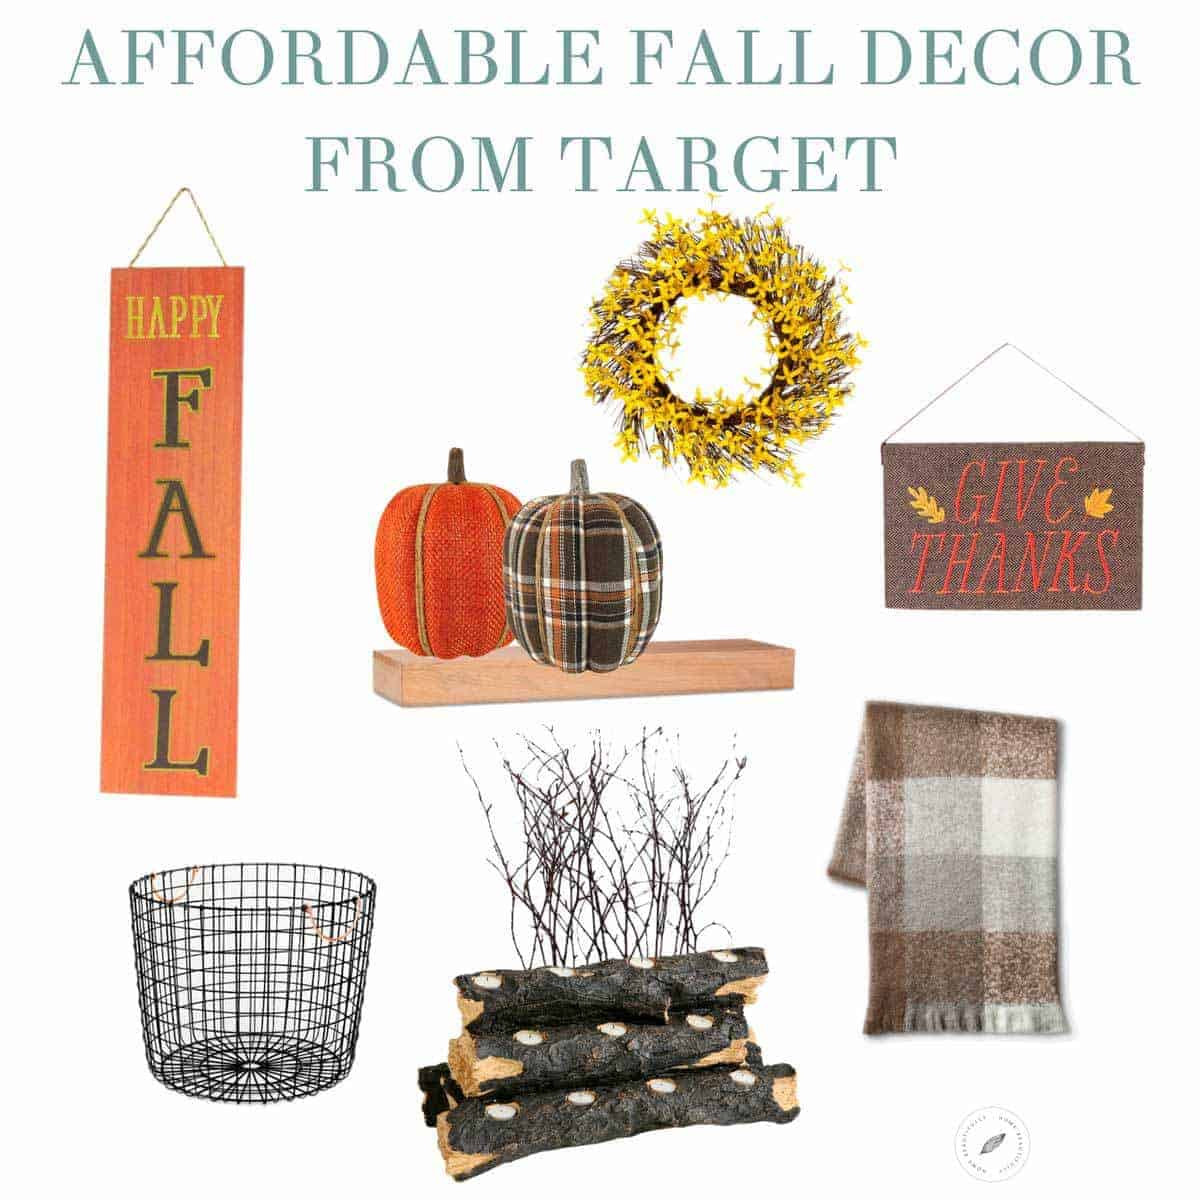 Budget friendly diy wall decor and accessories home for Best home decor blogs 2017